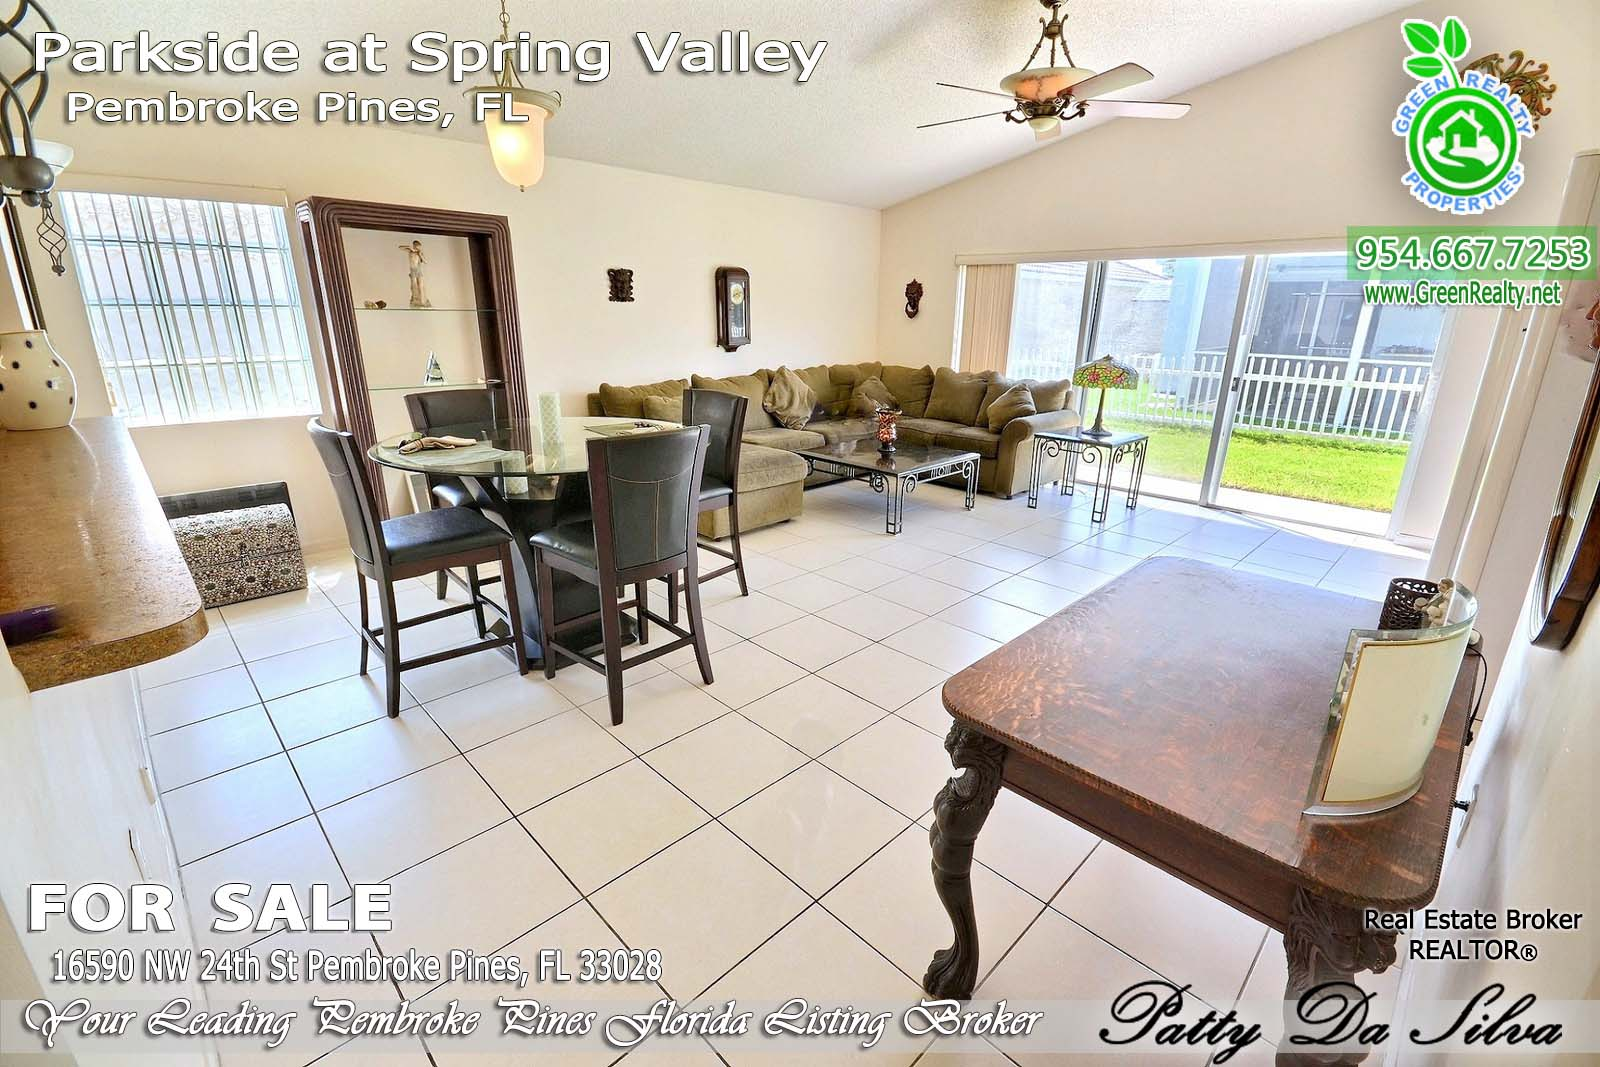 Parkside at Spring Valley Homes For Sale - Pembroke Pines Florida (9)